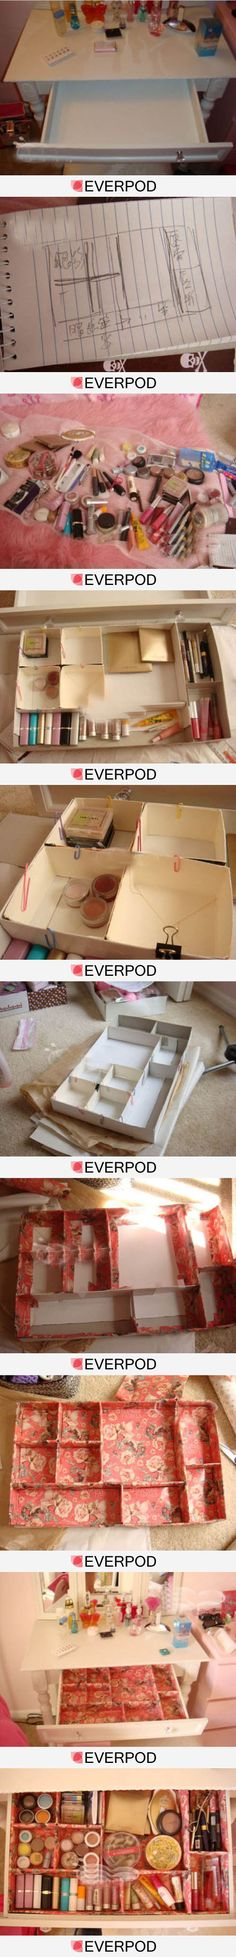 How to plan and make pretty drawer dividers - I would like to say I'll make this happen... but knowing me, my makeup cart will continue to look more like a series of junk drawers.